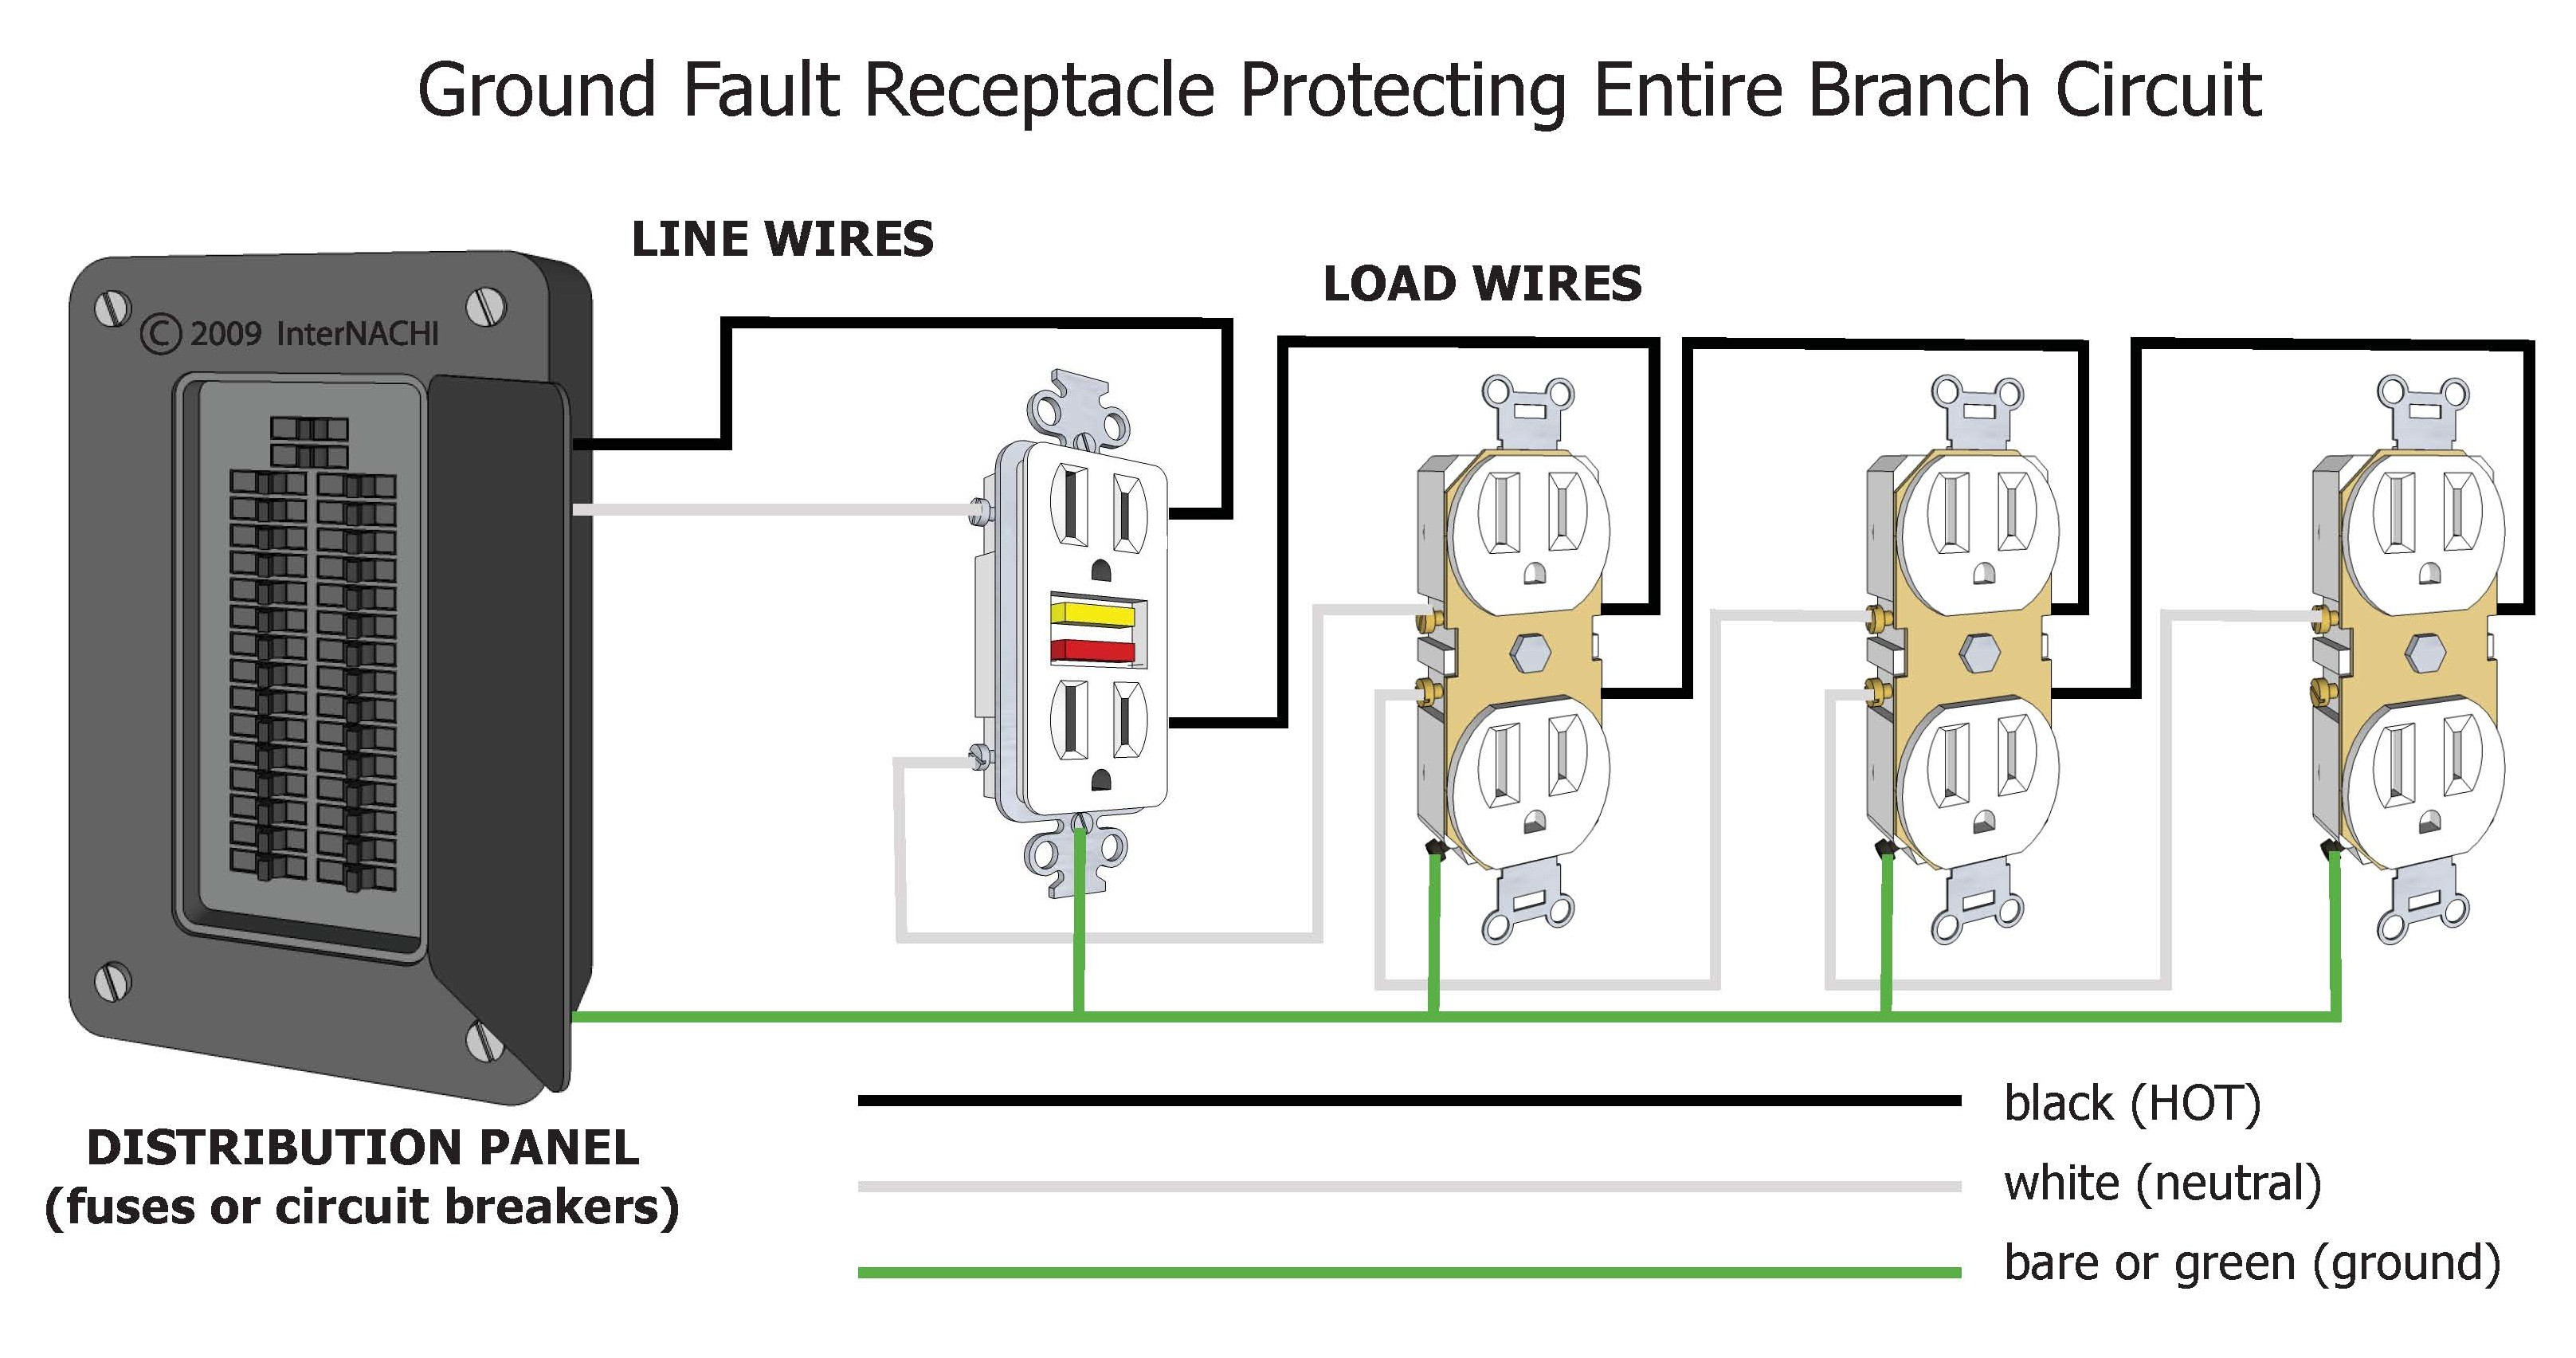 load center wiring diagram Collection-Circuit Breaker Diagram New Ground Fault Circuit Interrupter Wiring Diagram 17-j